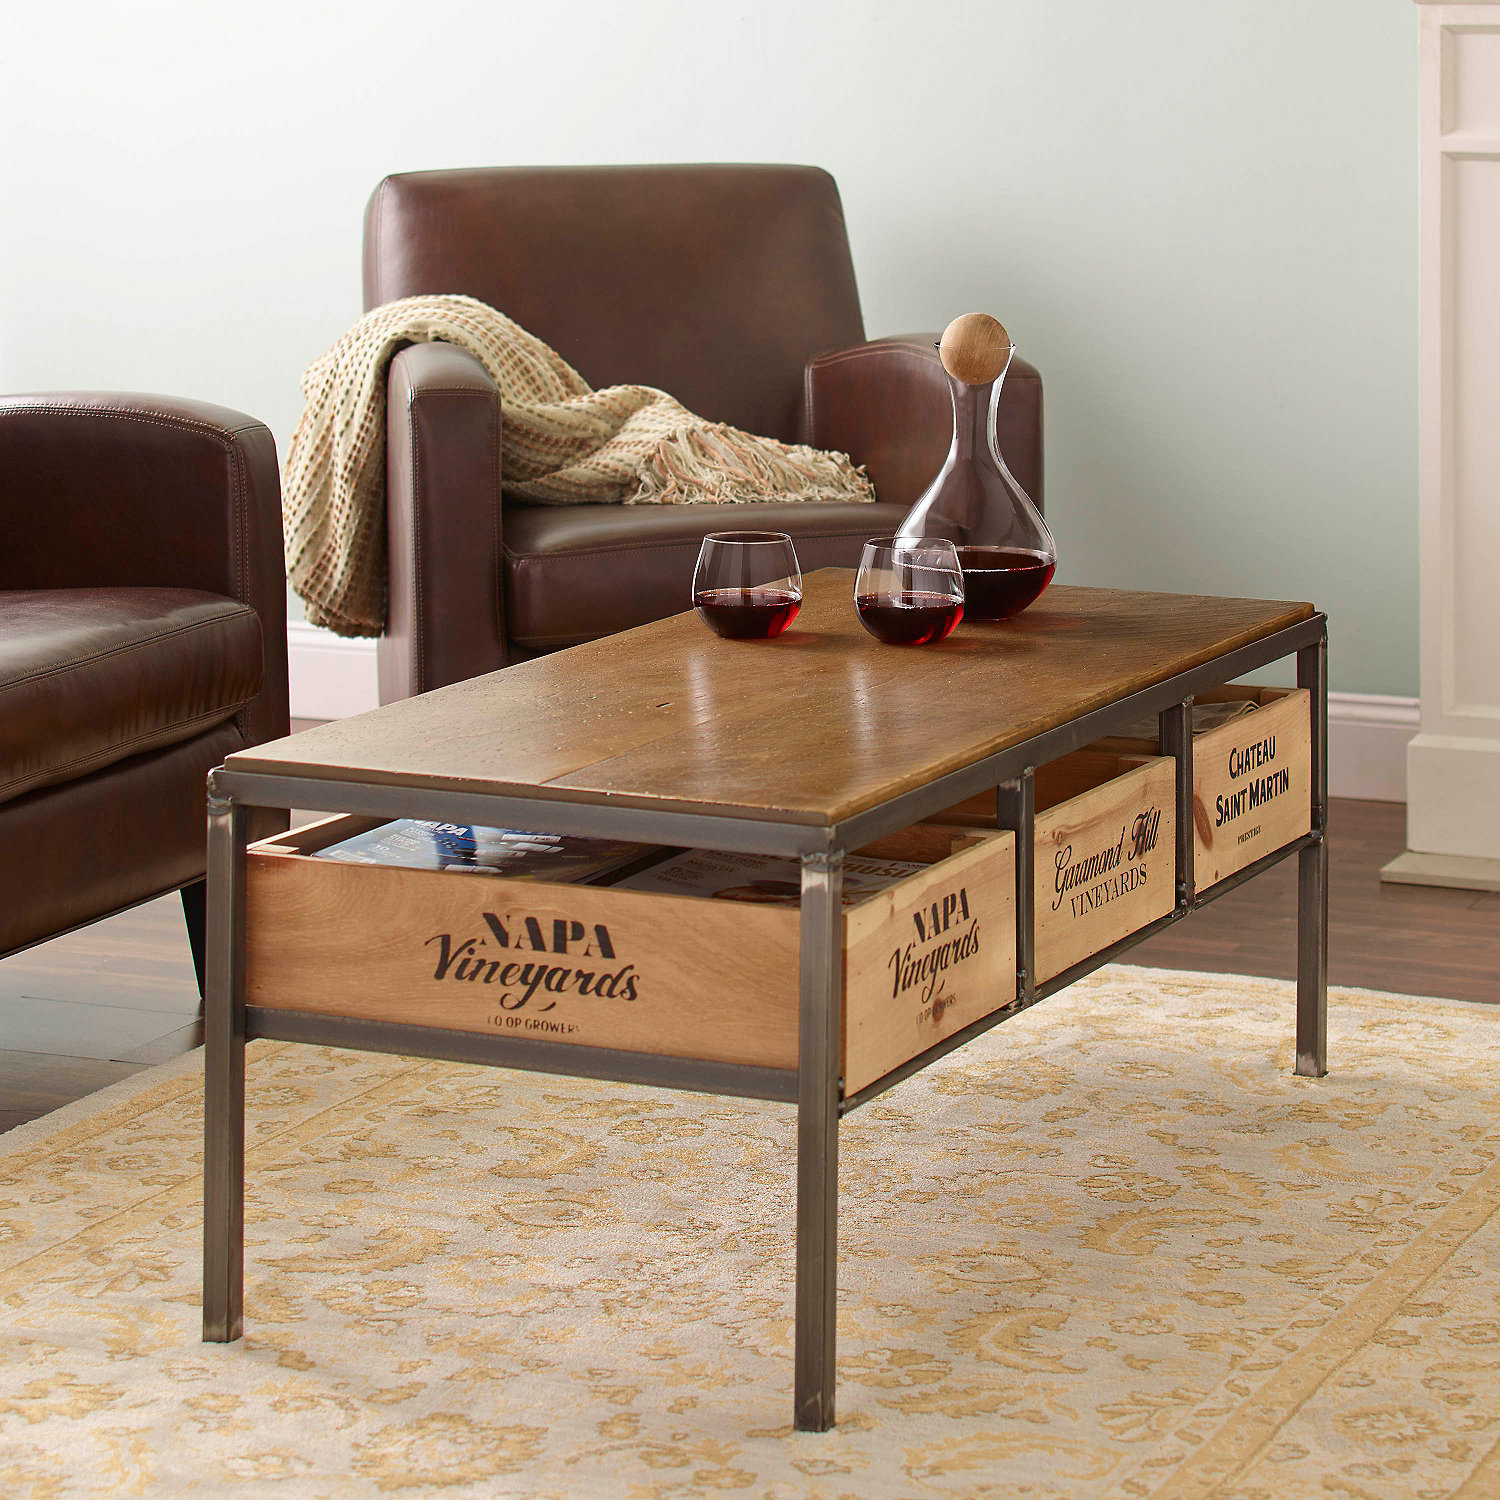 Preparing Zoom - Vino Vintage Coffee Table - Wine Enthusiast